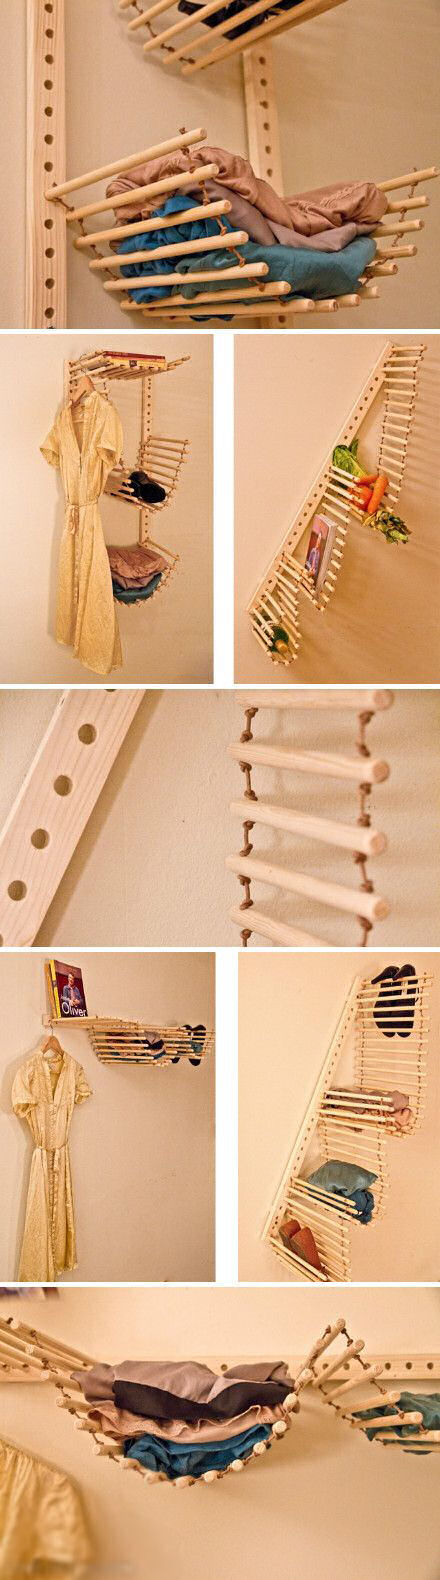 diy room organization tumblr diy room organization pictures photos and images for 581